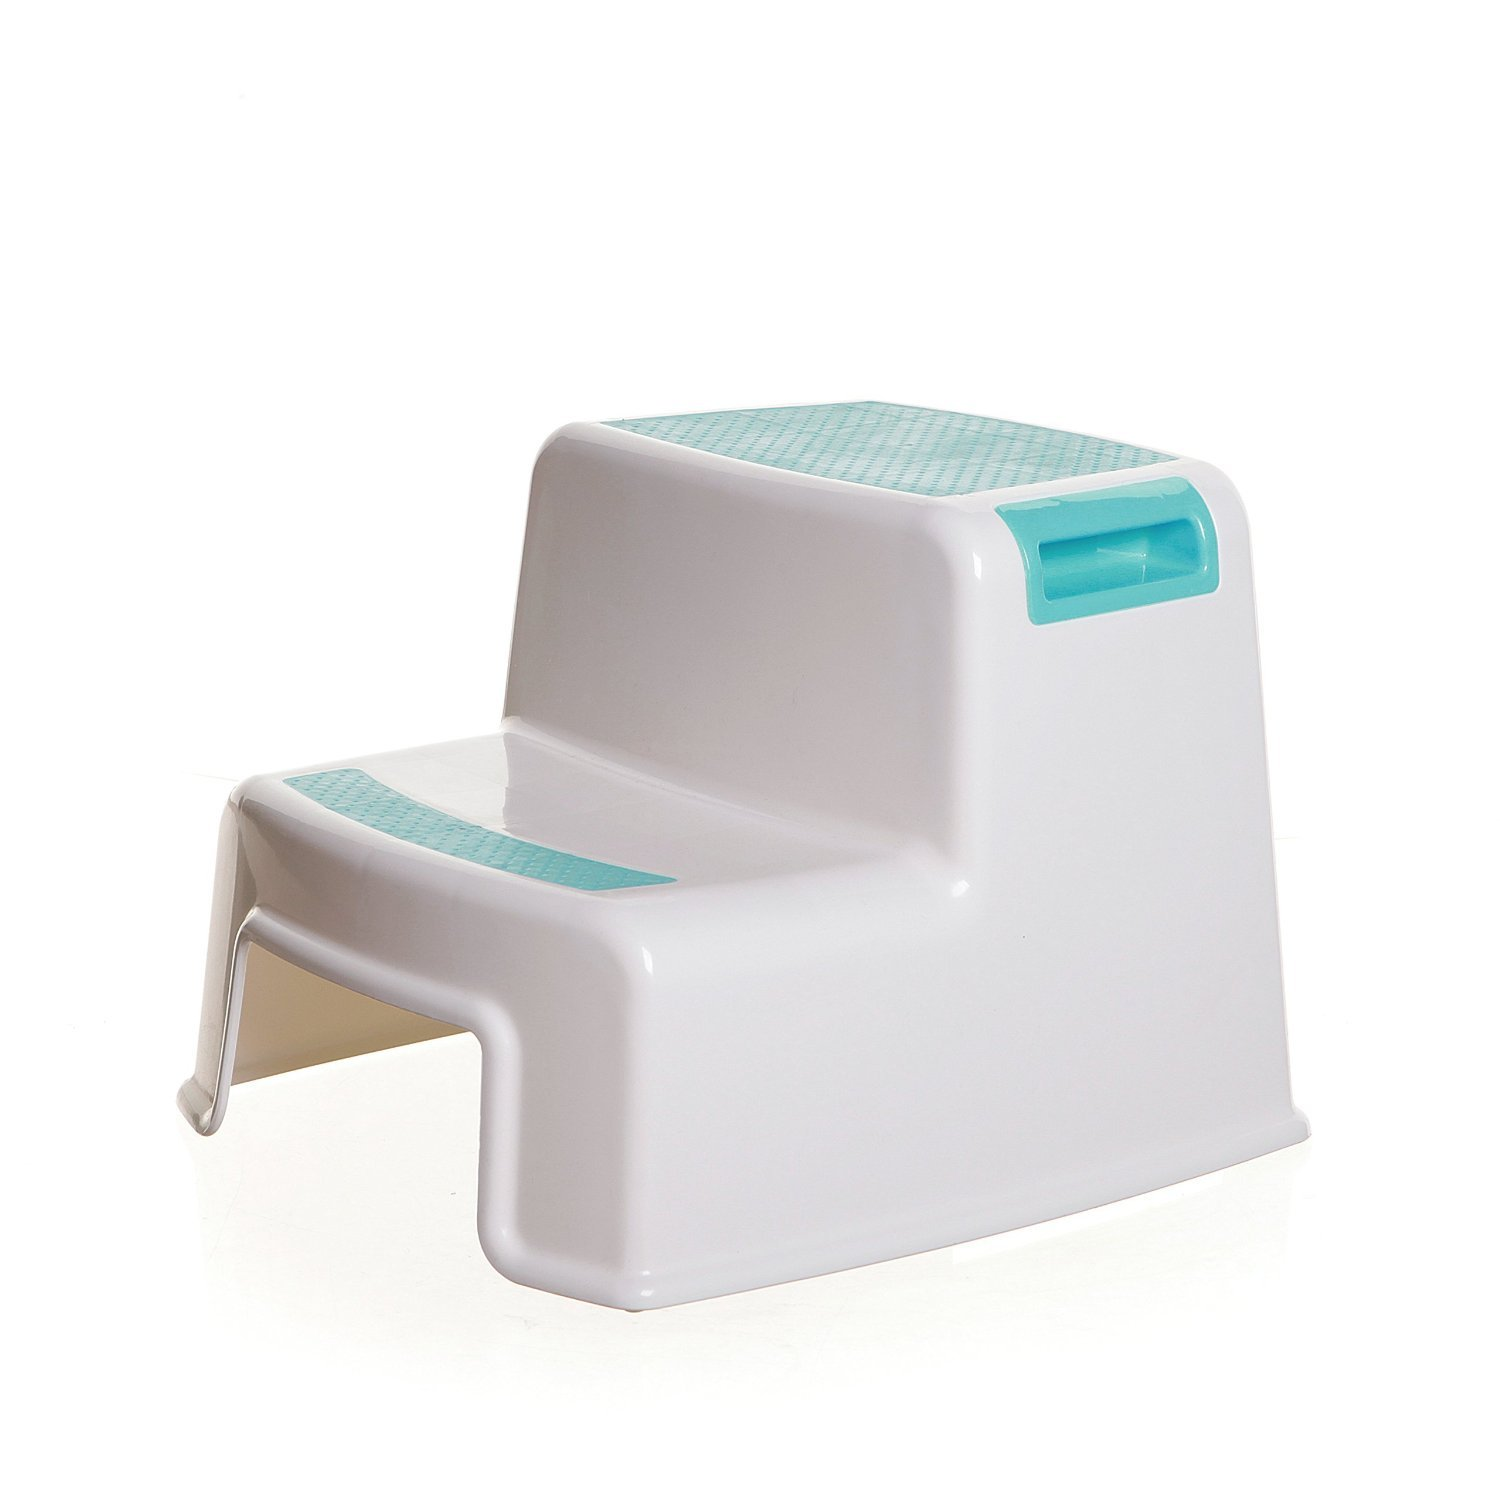 Kids furniture for sale in us compare 72 used products Bathroom step stool for kids